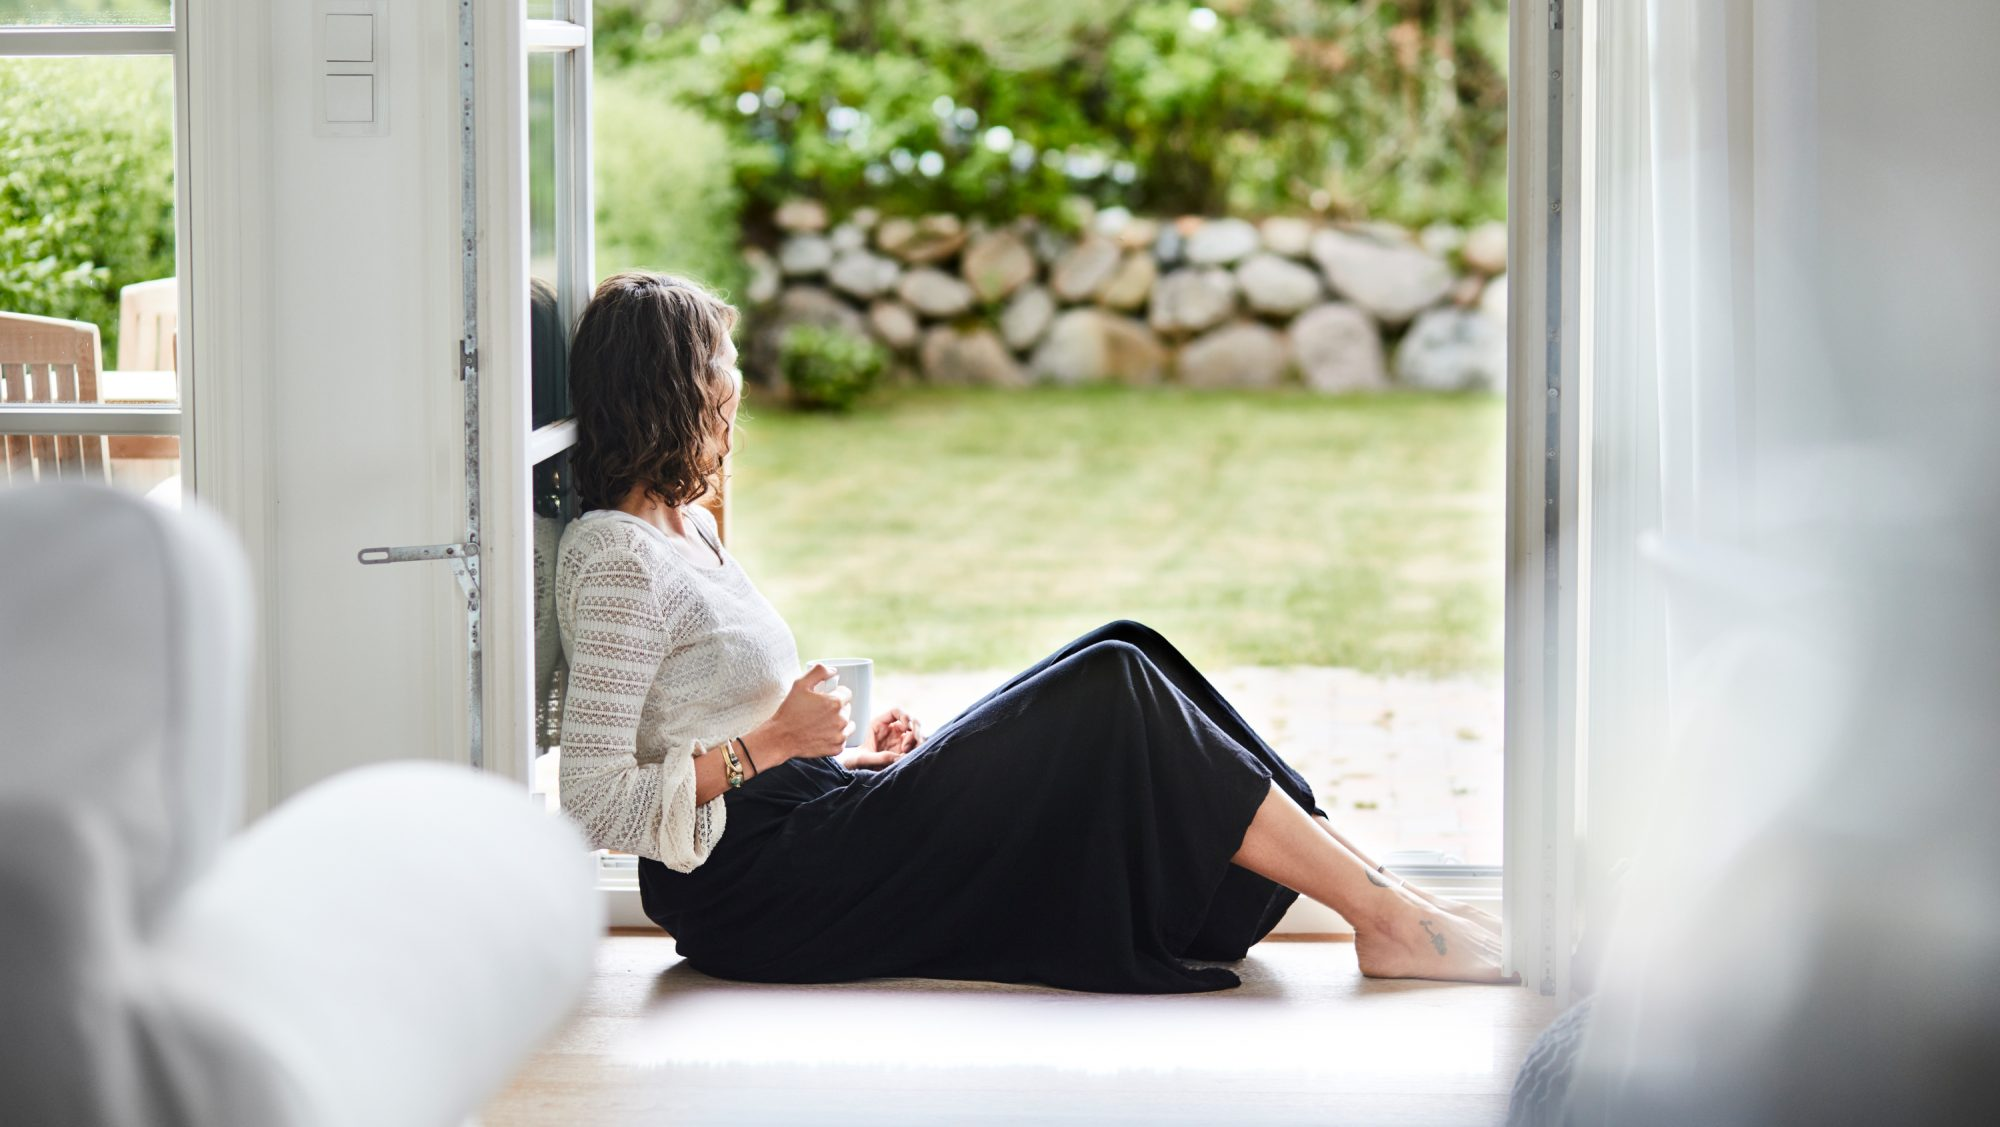 Woman sitting on the floor alone looking outside